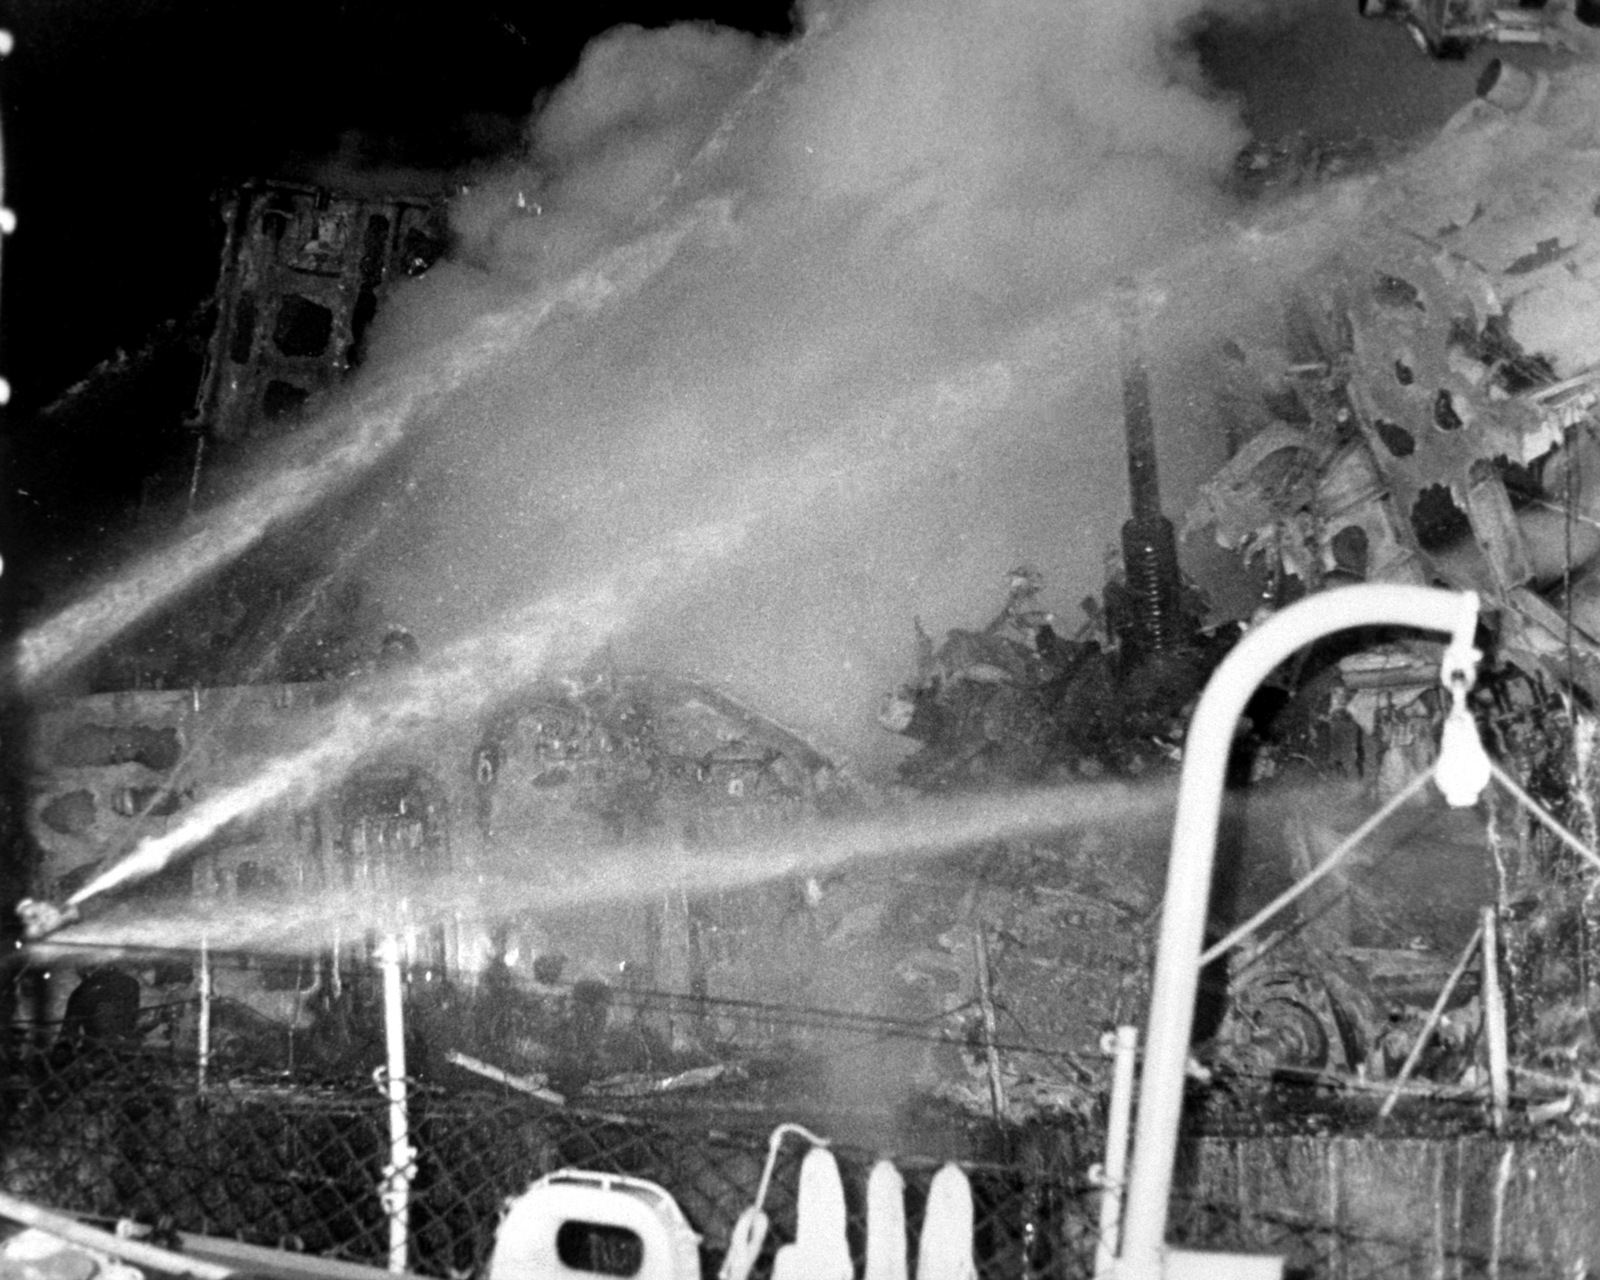 Firefighters aboard the guided missile destroyer USS CLAUDE V. RICKETTS (DDG-5) direct spray from their hoses onto a fire aboard the guided missile cruiser USS BELKNAP (CG-26). The BELKNAP was heavily damaged and caught fire when it collided with the aircraft carrier USS JOHN F. KENNEDY (CV-67) during night operations